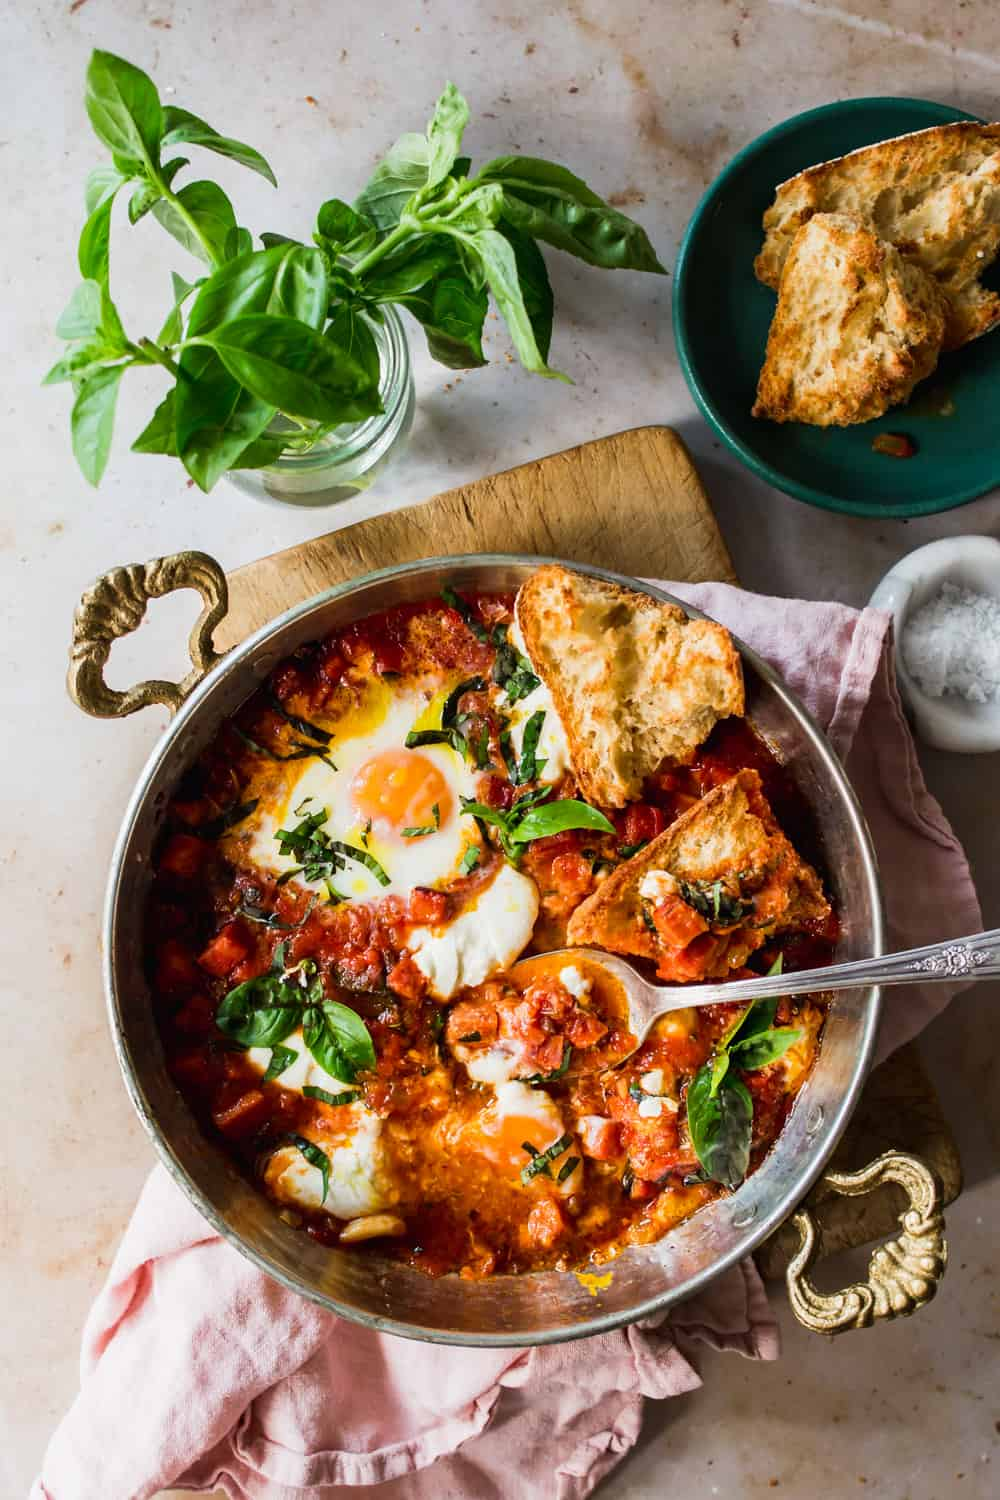 Overhead shot of baked eggs and tomato sauce in a skillet